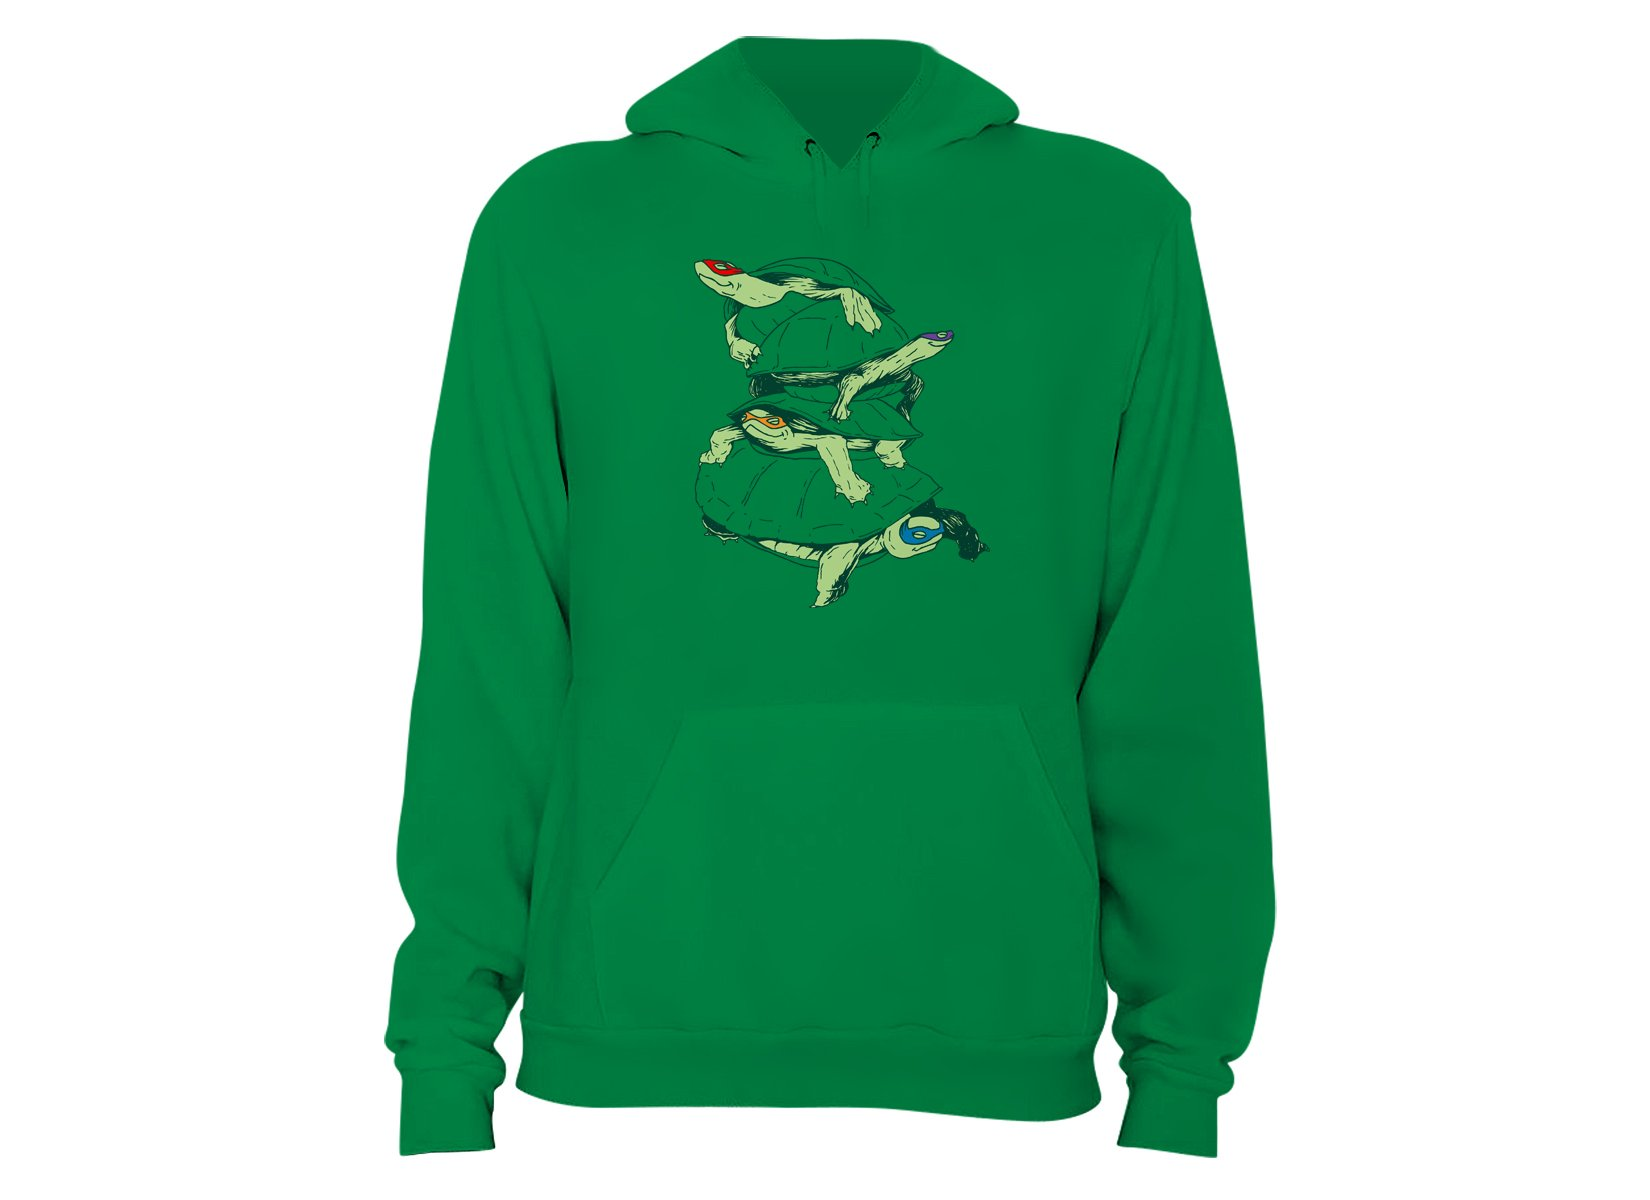 Masked Turtles on Hoodie